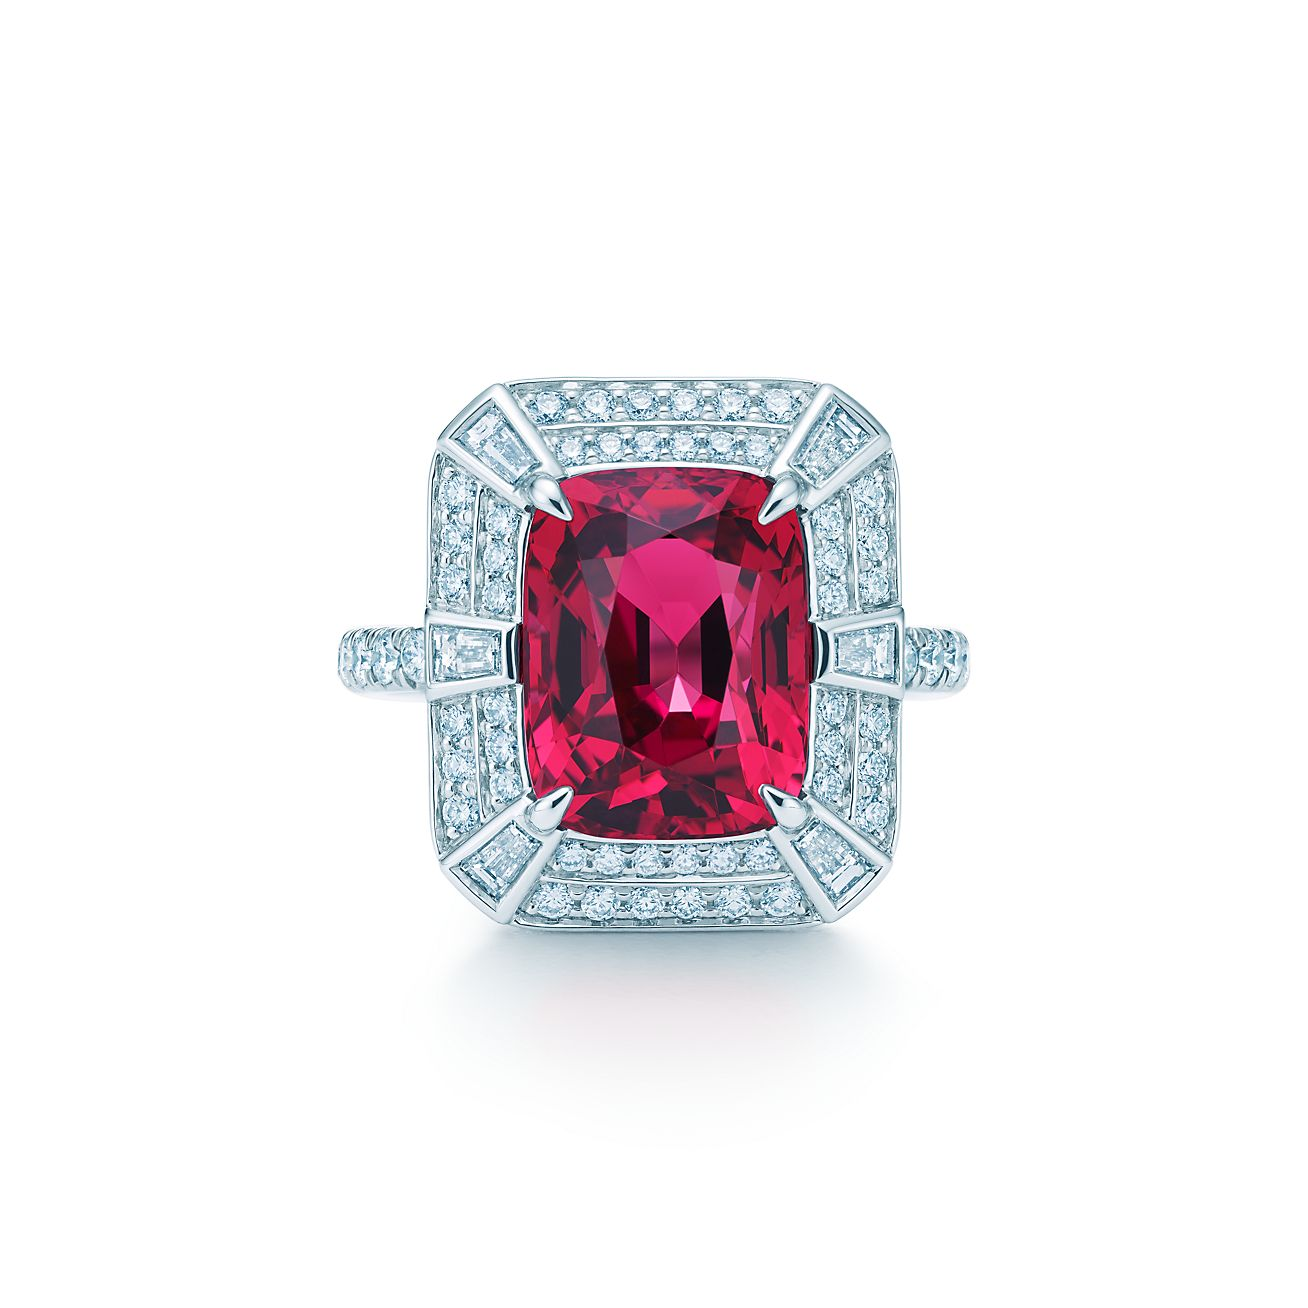 Ring in platinum with a 6 01 carat red spinel and diamonds